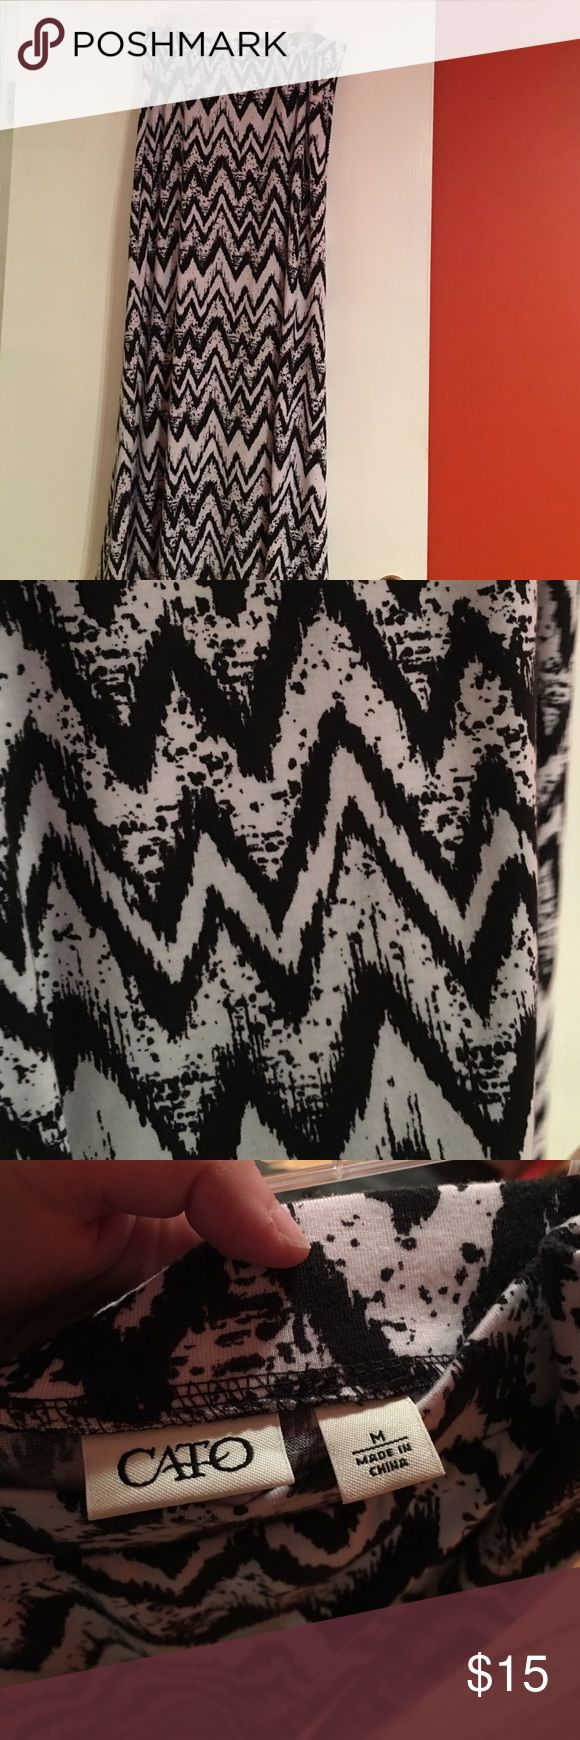 Size medium long black and white chevron skirt Size medium Cato brand black and white long chevron skirt. Barely worn. Cato Skirts